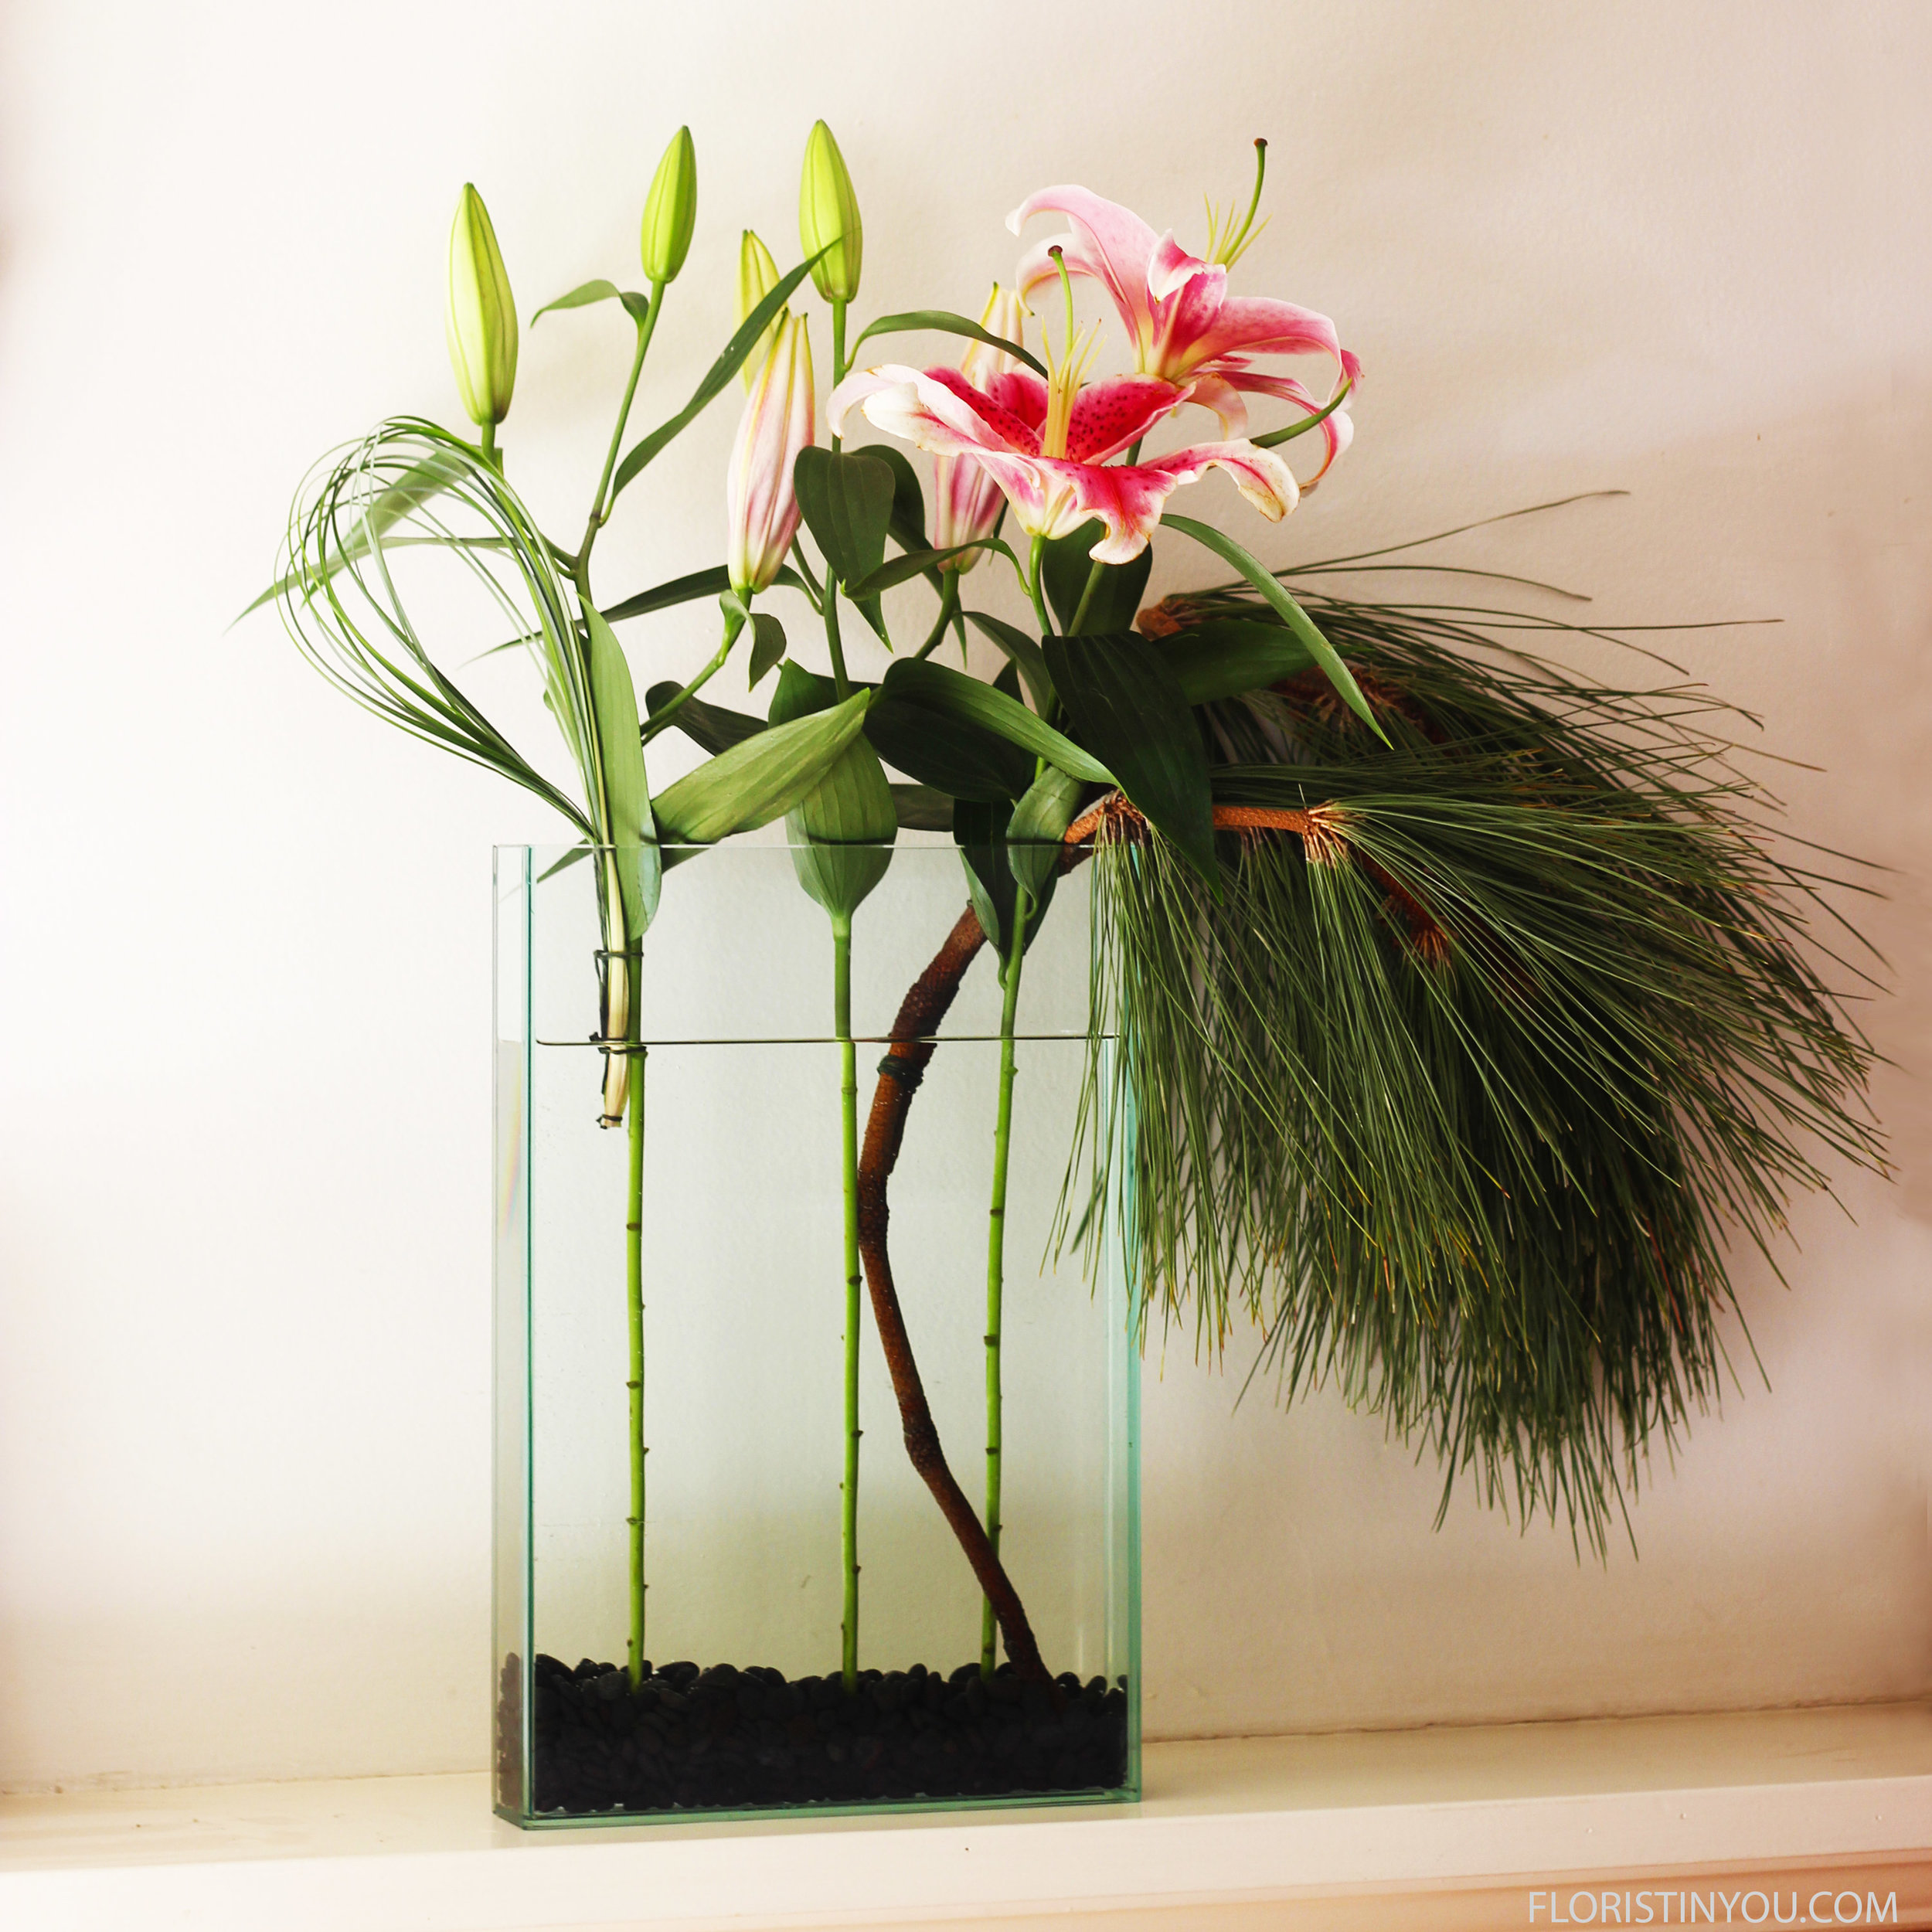 Lilies & Pine Boughs